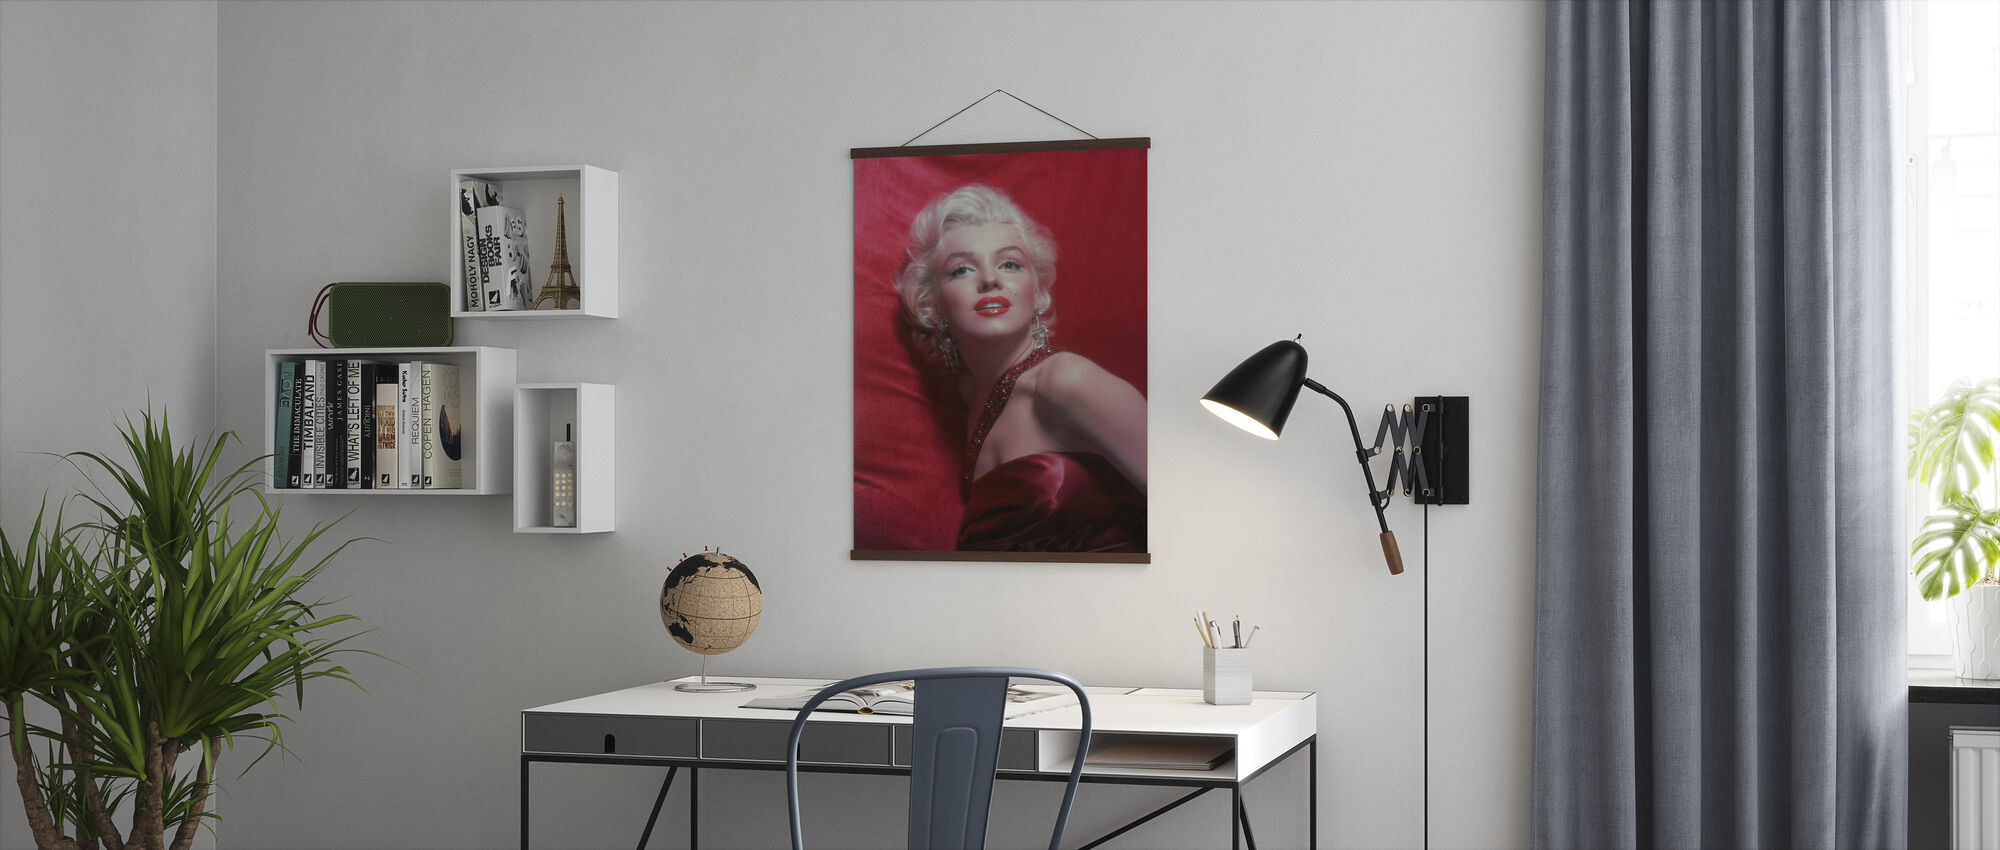 Marilyn Monroe in How to Marry a Millionaire - Poster - Office